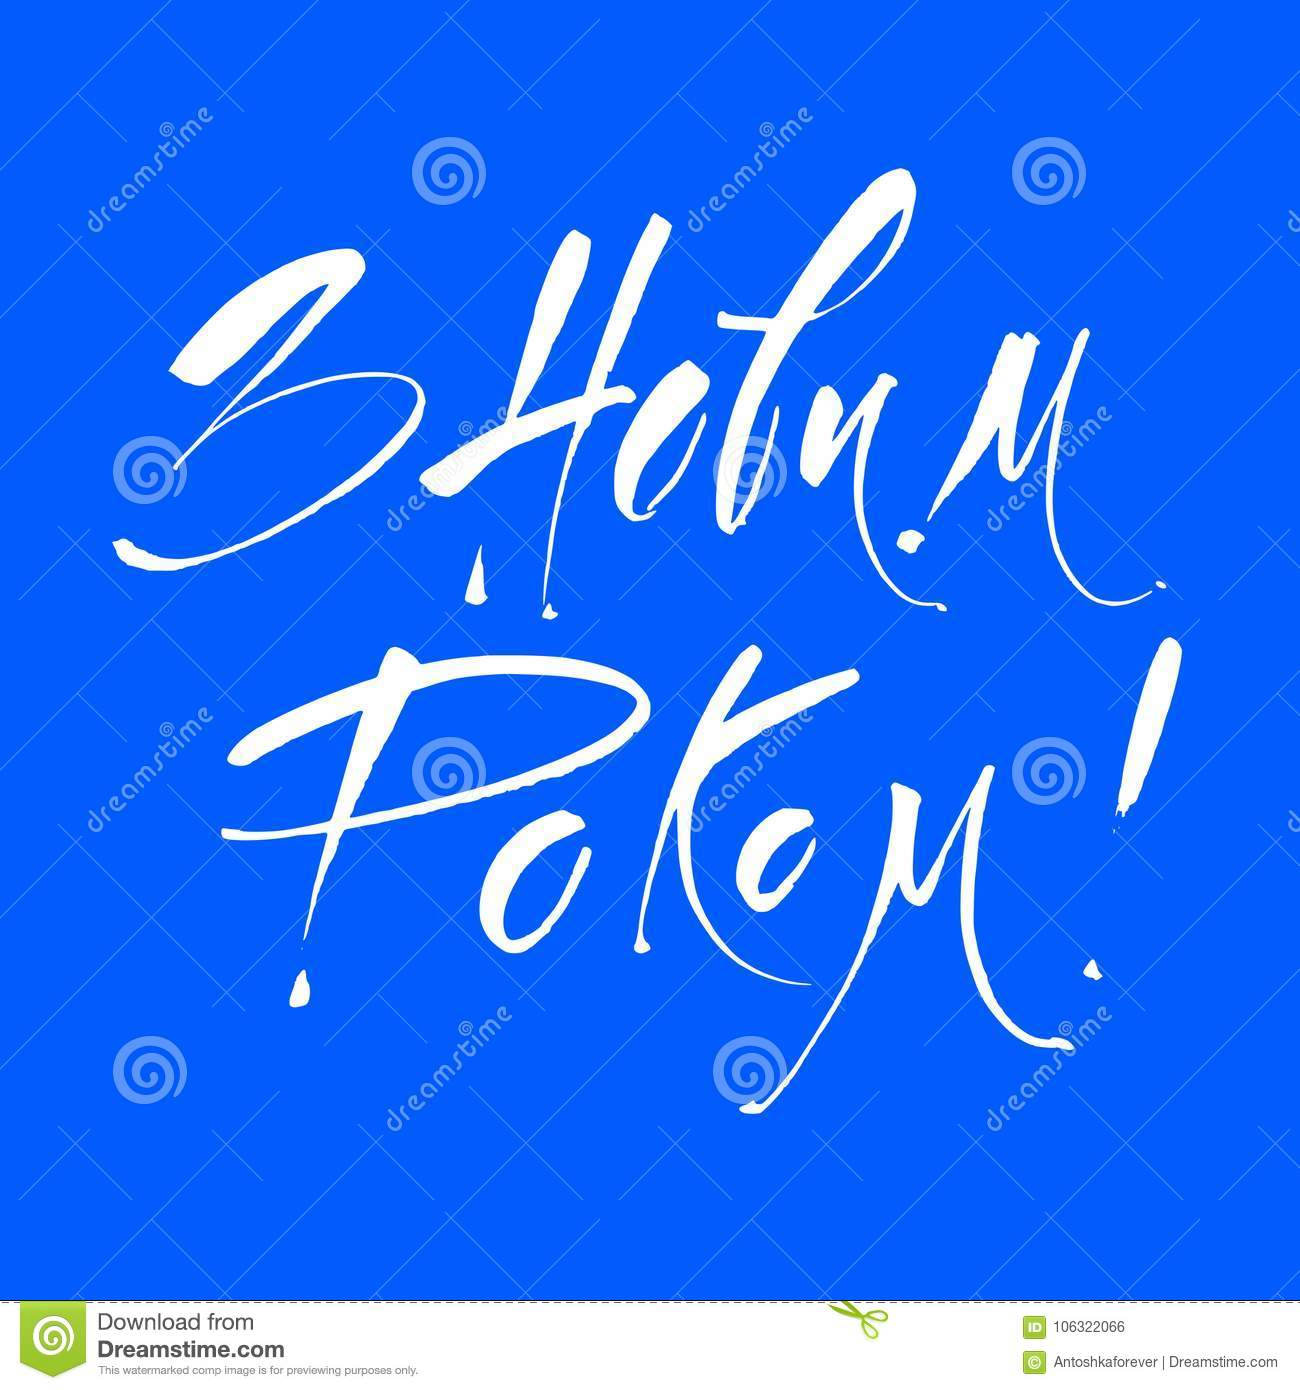 happy new year ukrainian calligraphy greeting card design hand drawn lettering quote vector illustration